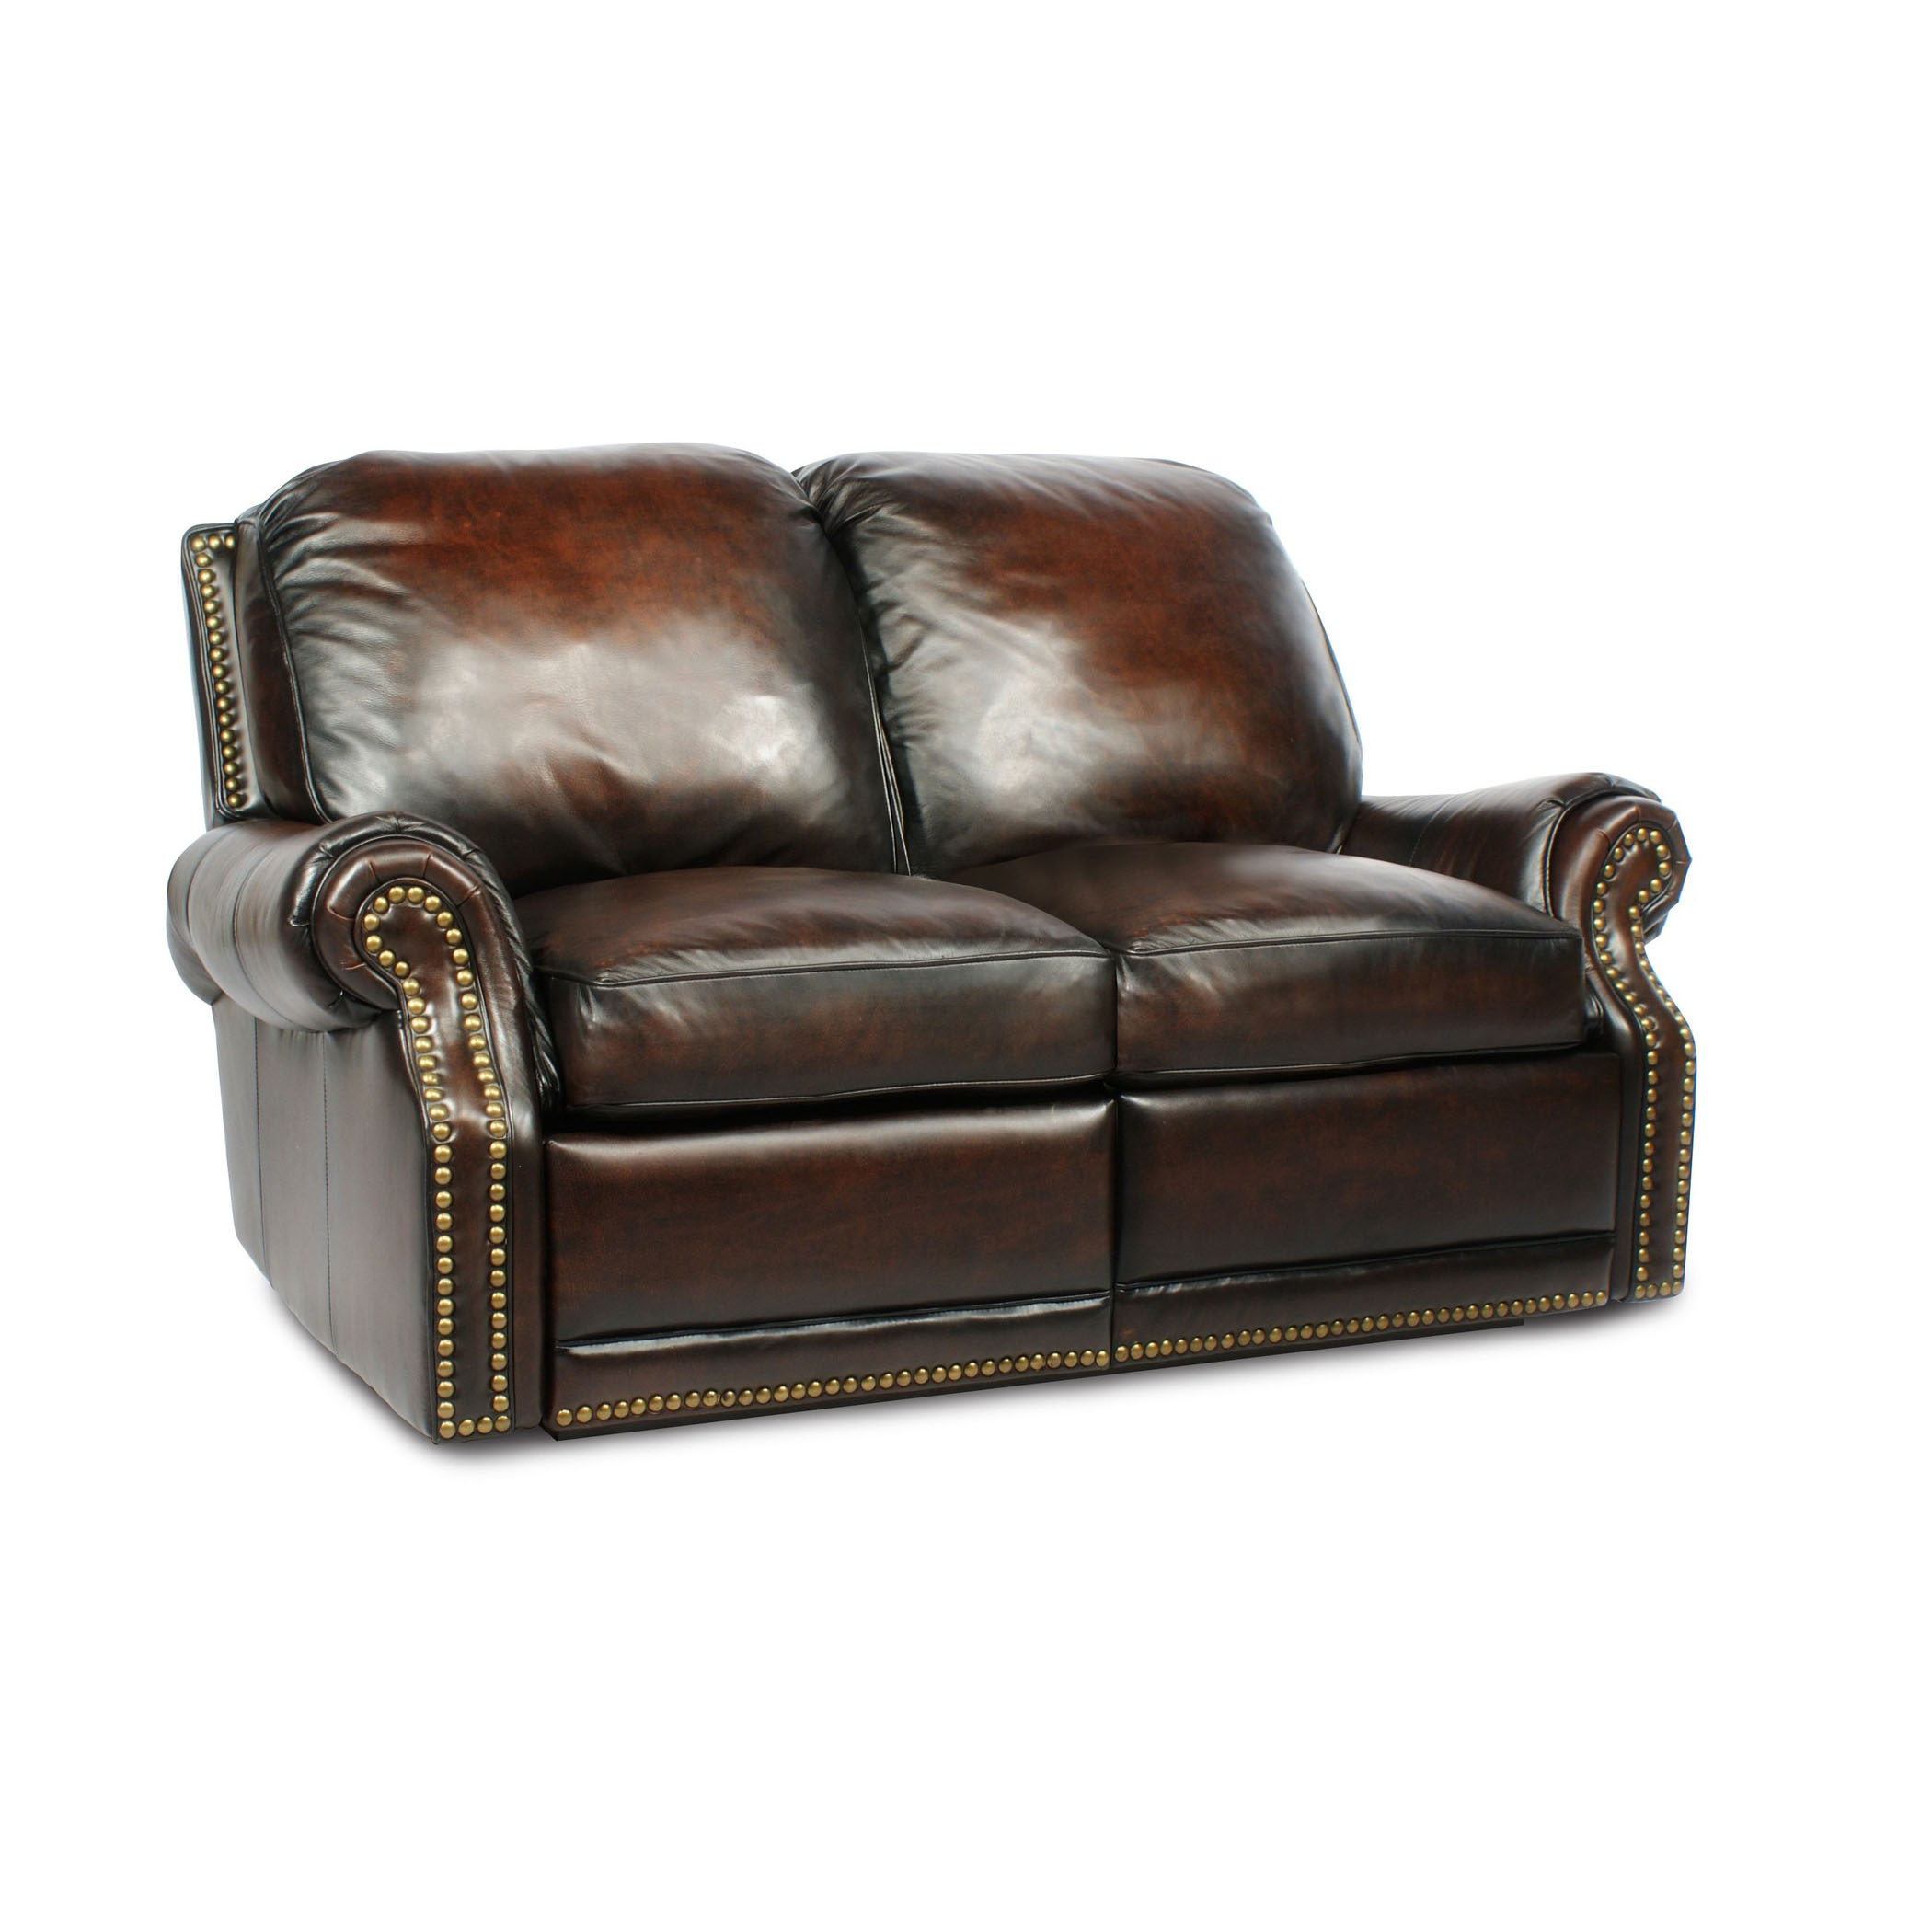 Barcalounger premier ii leather 2 seat loveseat sofa leather 2 seat loveseat sofa furniture Leather reclining sofa loveseat